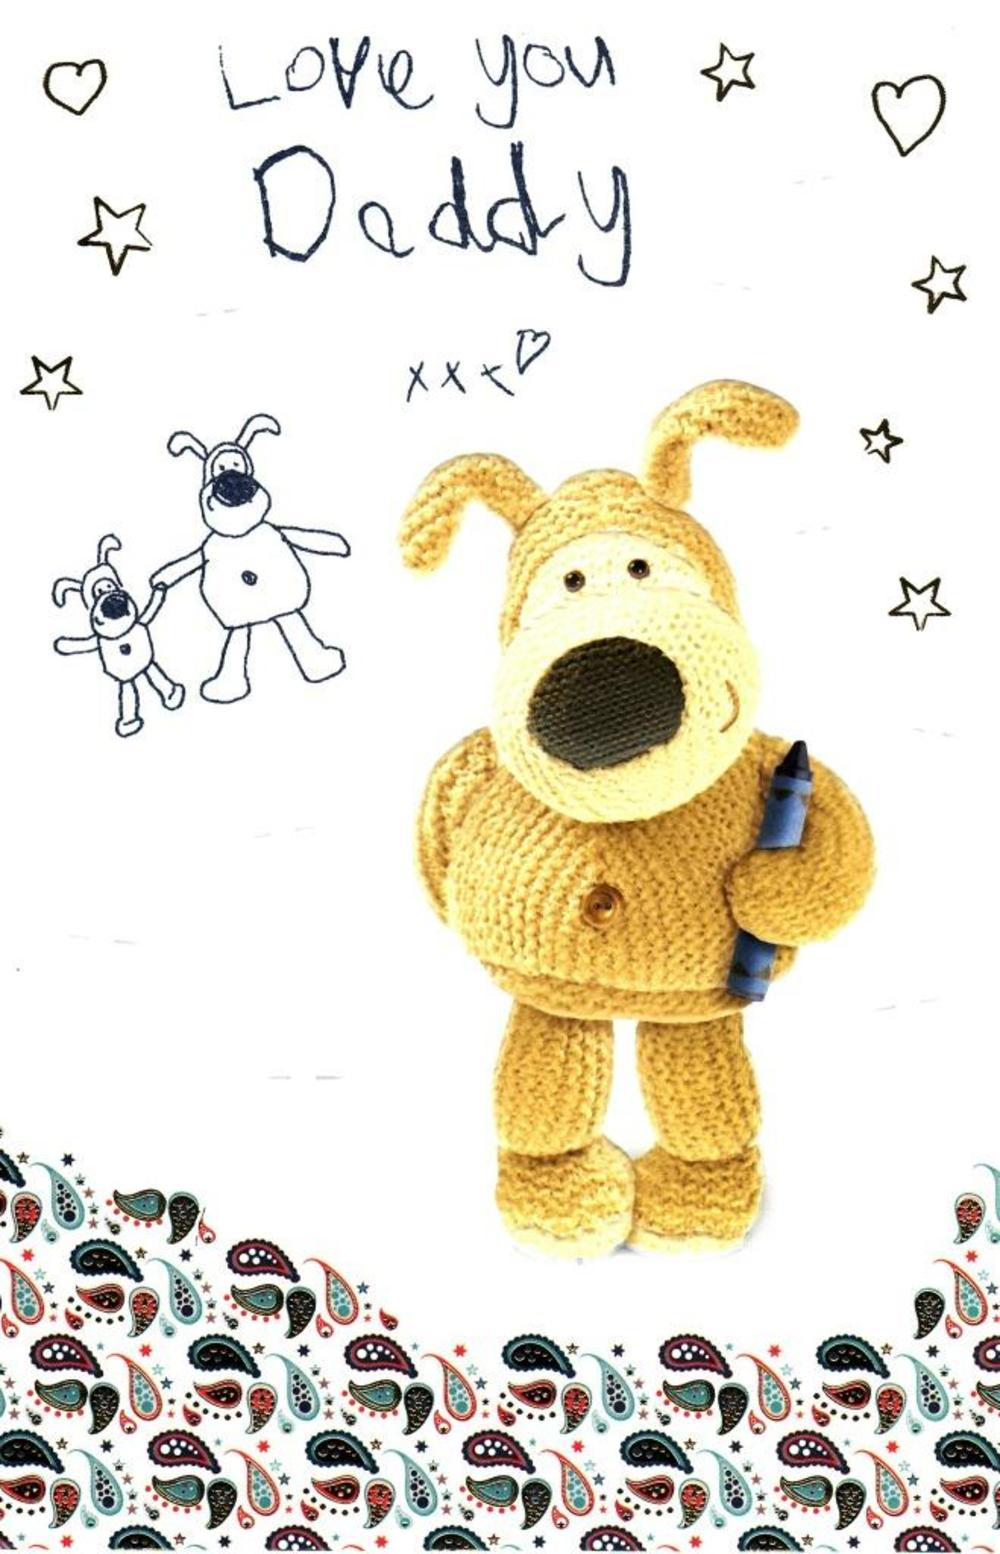 Boofle Love You Daddy Happy Father's Day Card